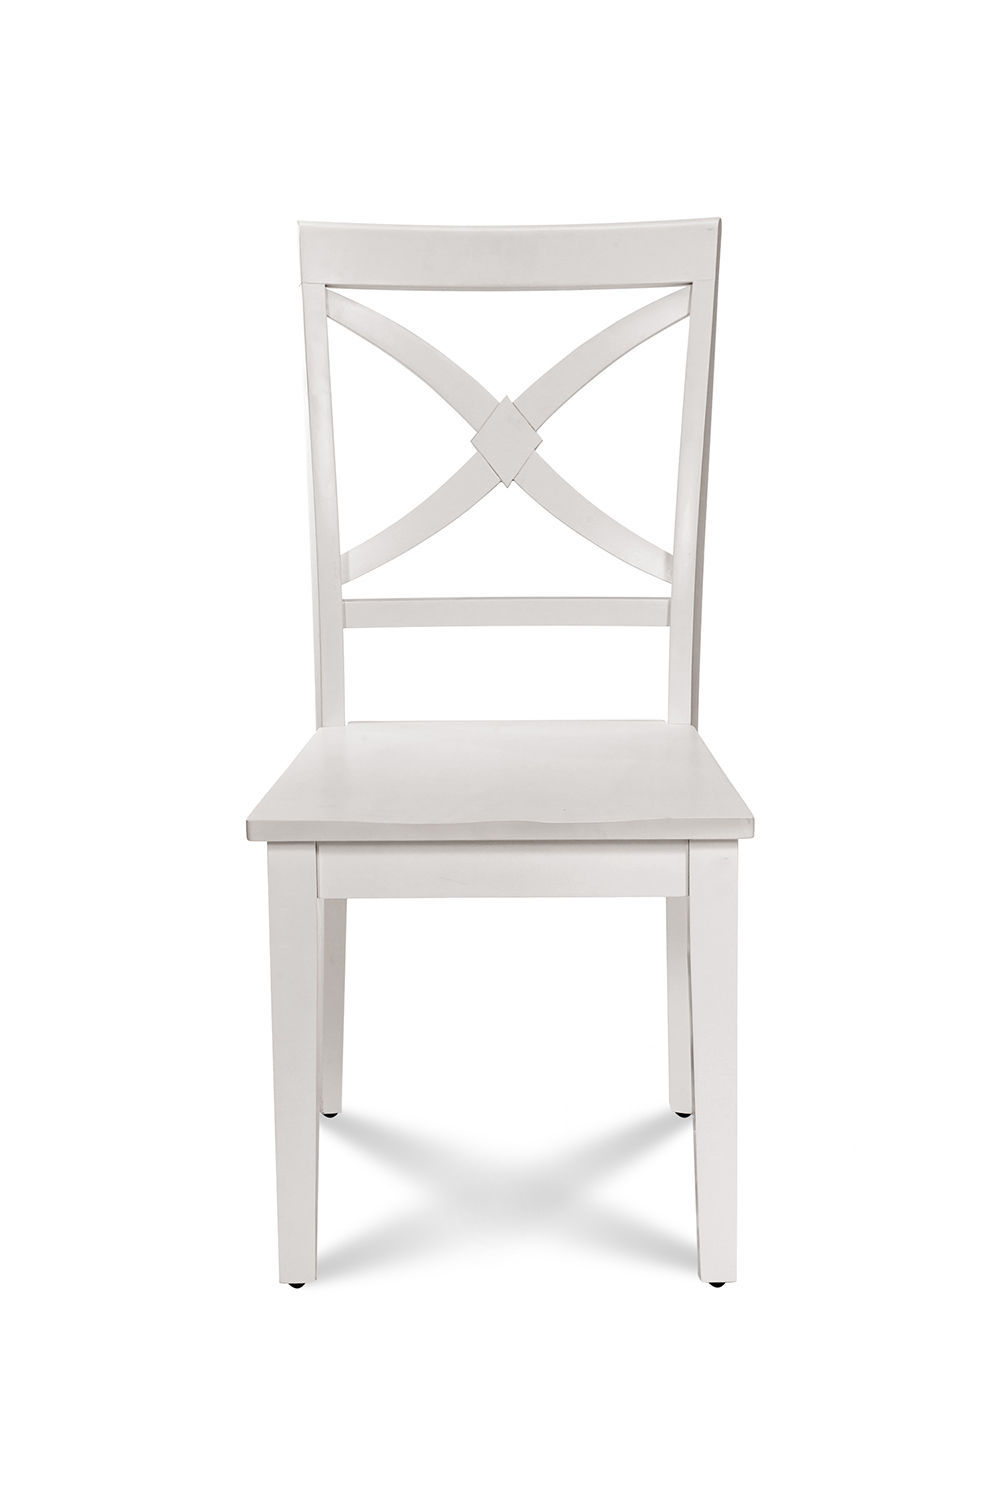 SET OF 4 KITCHEN DINING SIDE CHAIRS w/ WOODEN SEAT IN  WHITE FINISH